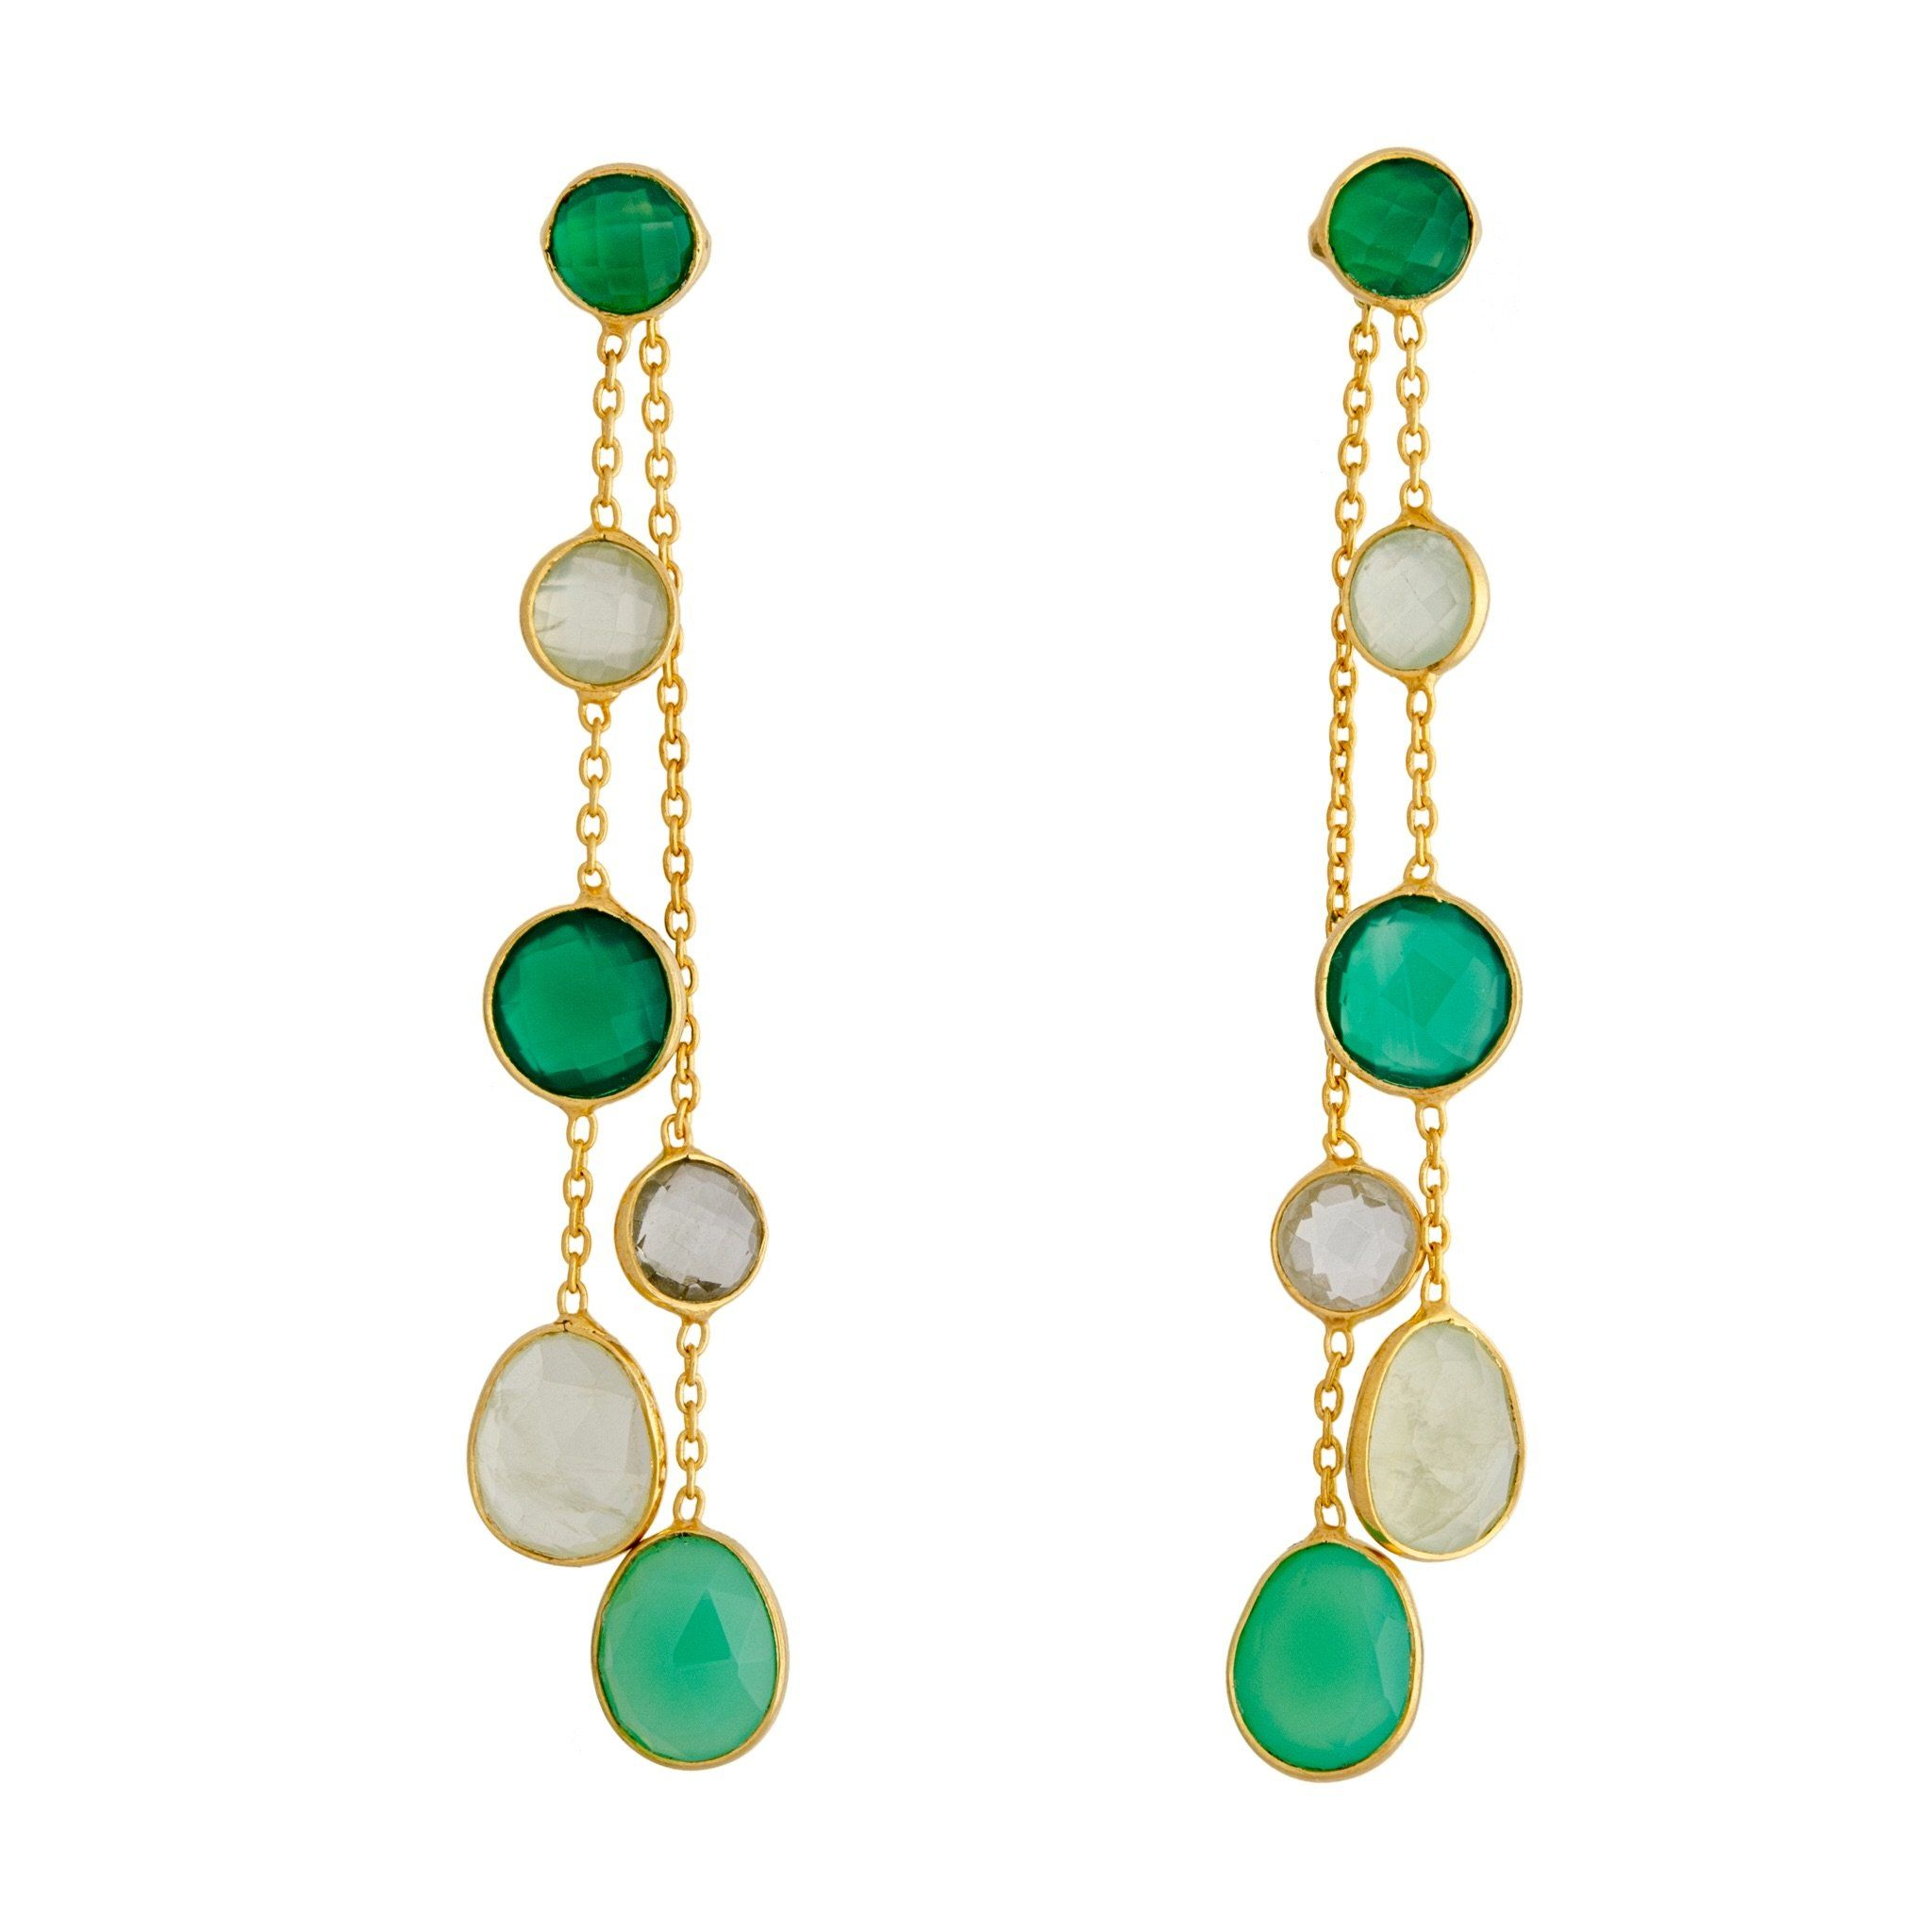 BUA green onyx earrings